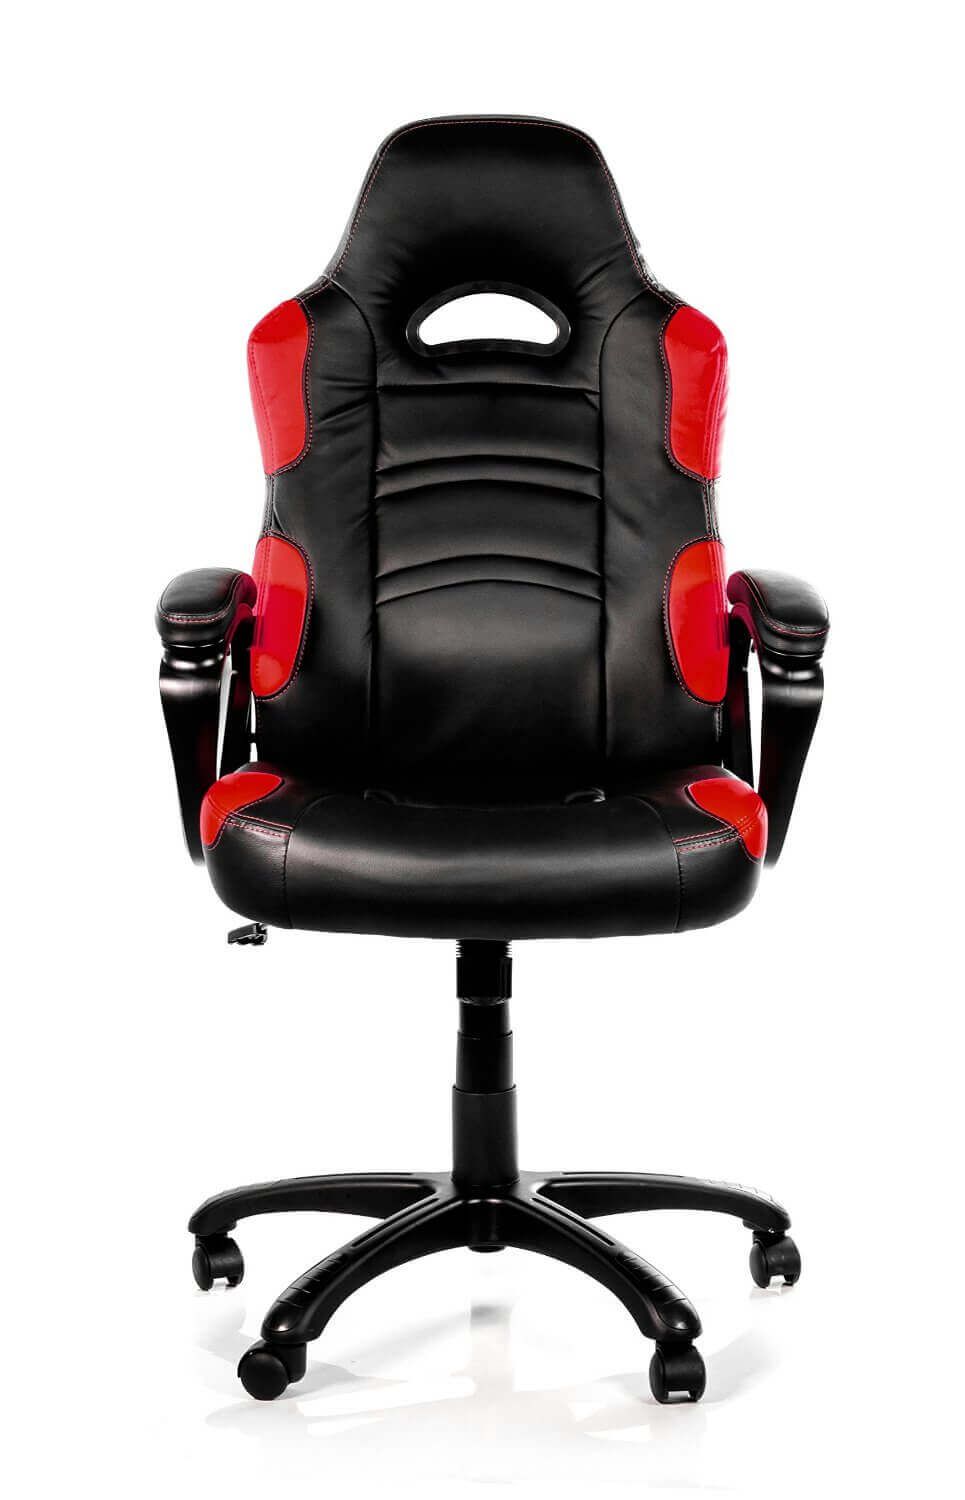 19 Best Gaming Chairs for PC Feb 2018  Computer Gaming